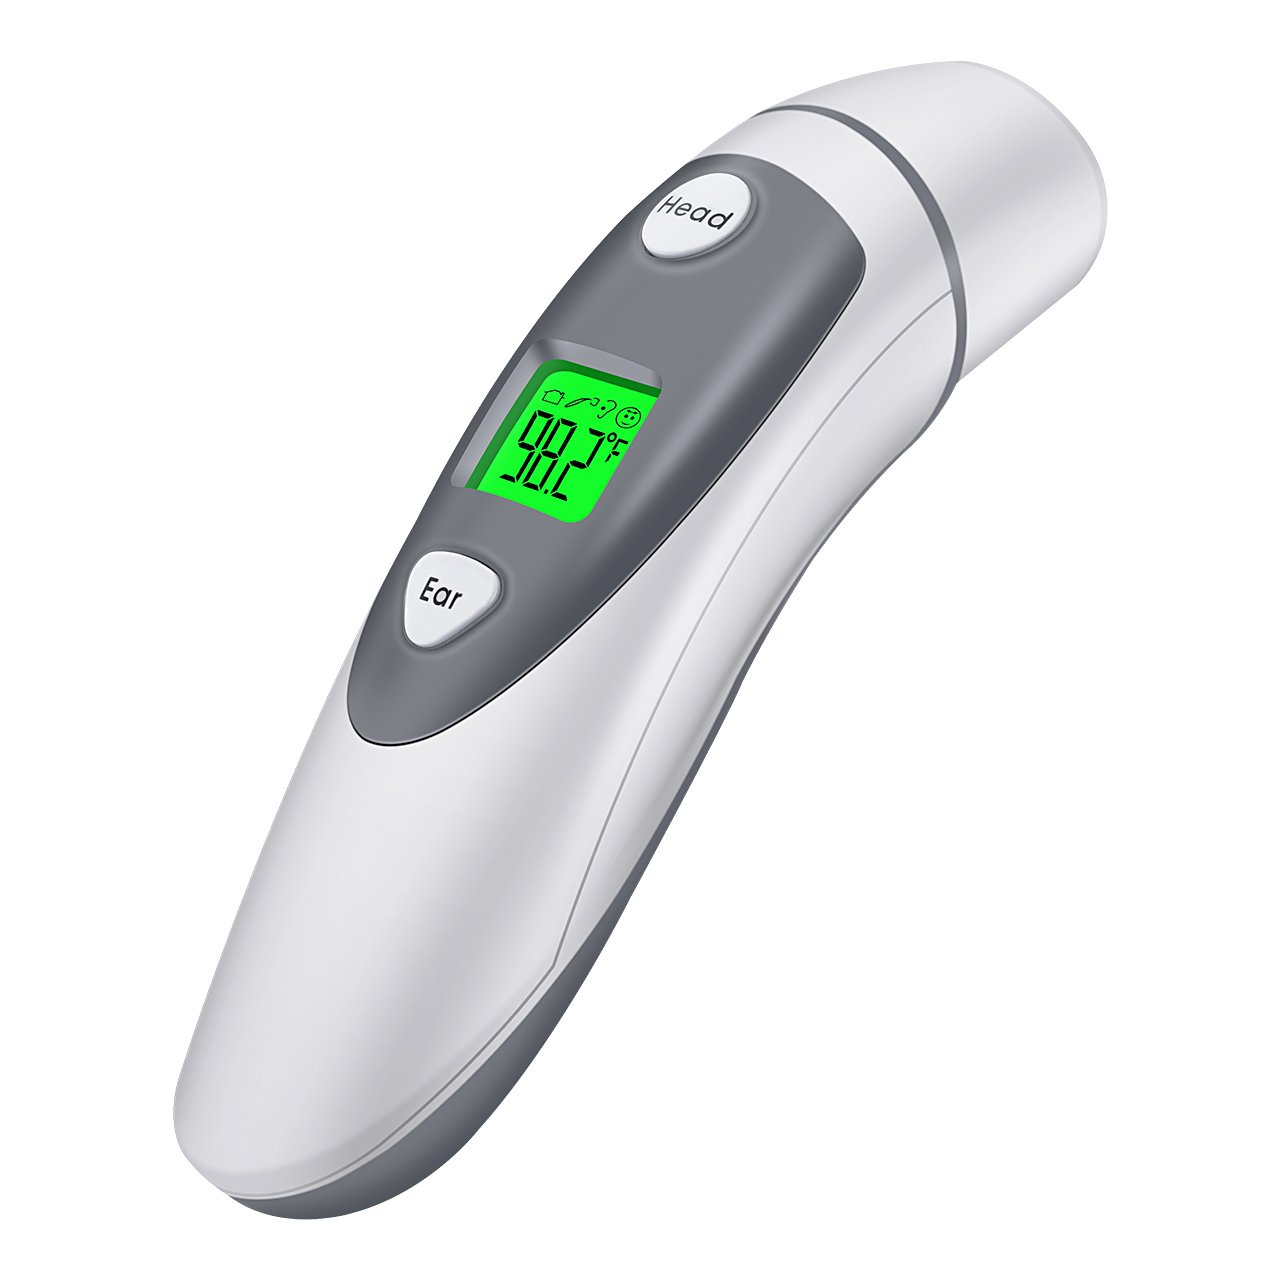 Habor FDA 1 Second Medical Forehead Ear Thermometer Fever Infrared Digital Thermometer Instant and Accurate IR Clinical Thermometer for Baby Infant Kids and Adults